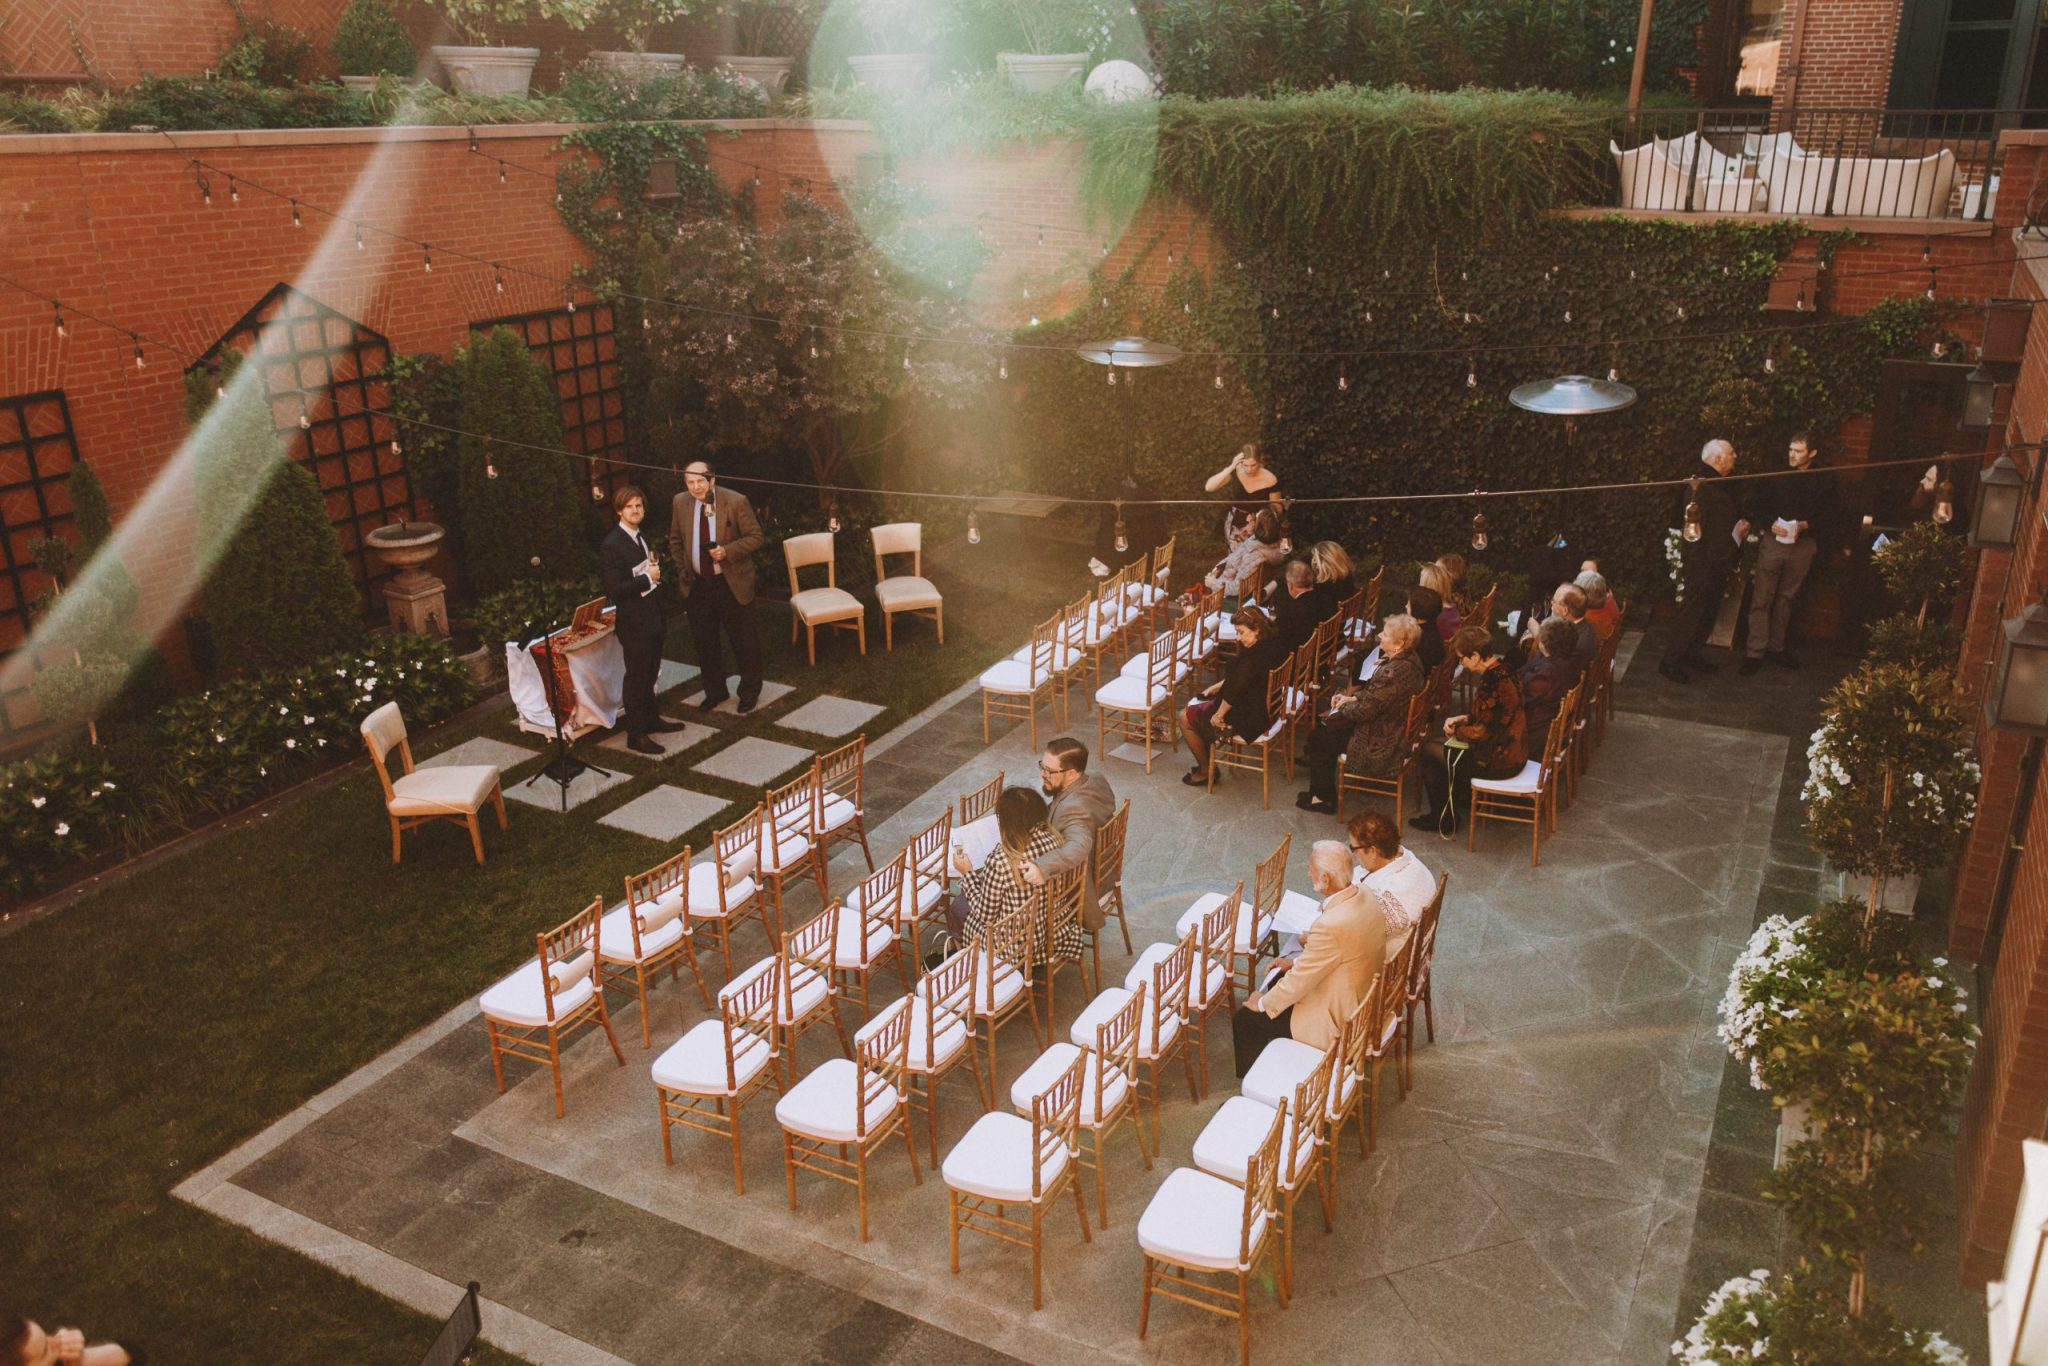 Courtyard set up for a wedding ceremony